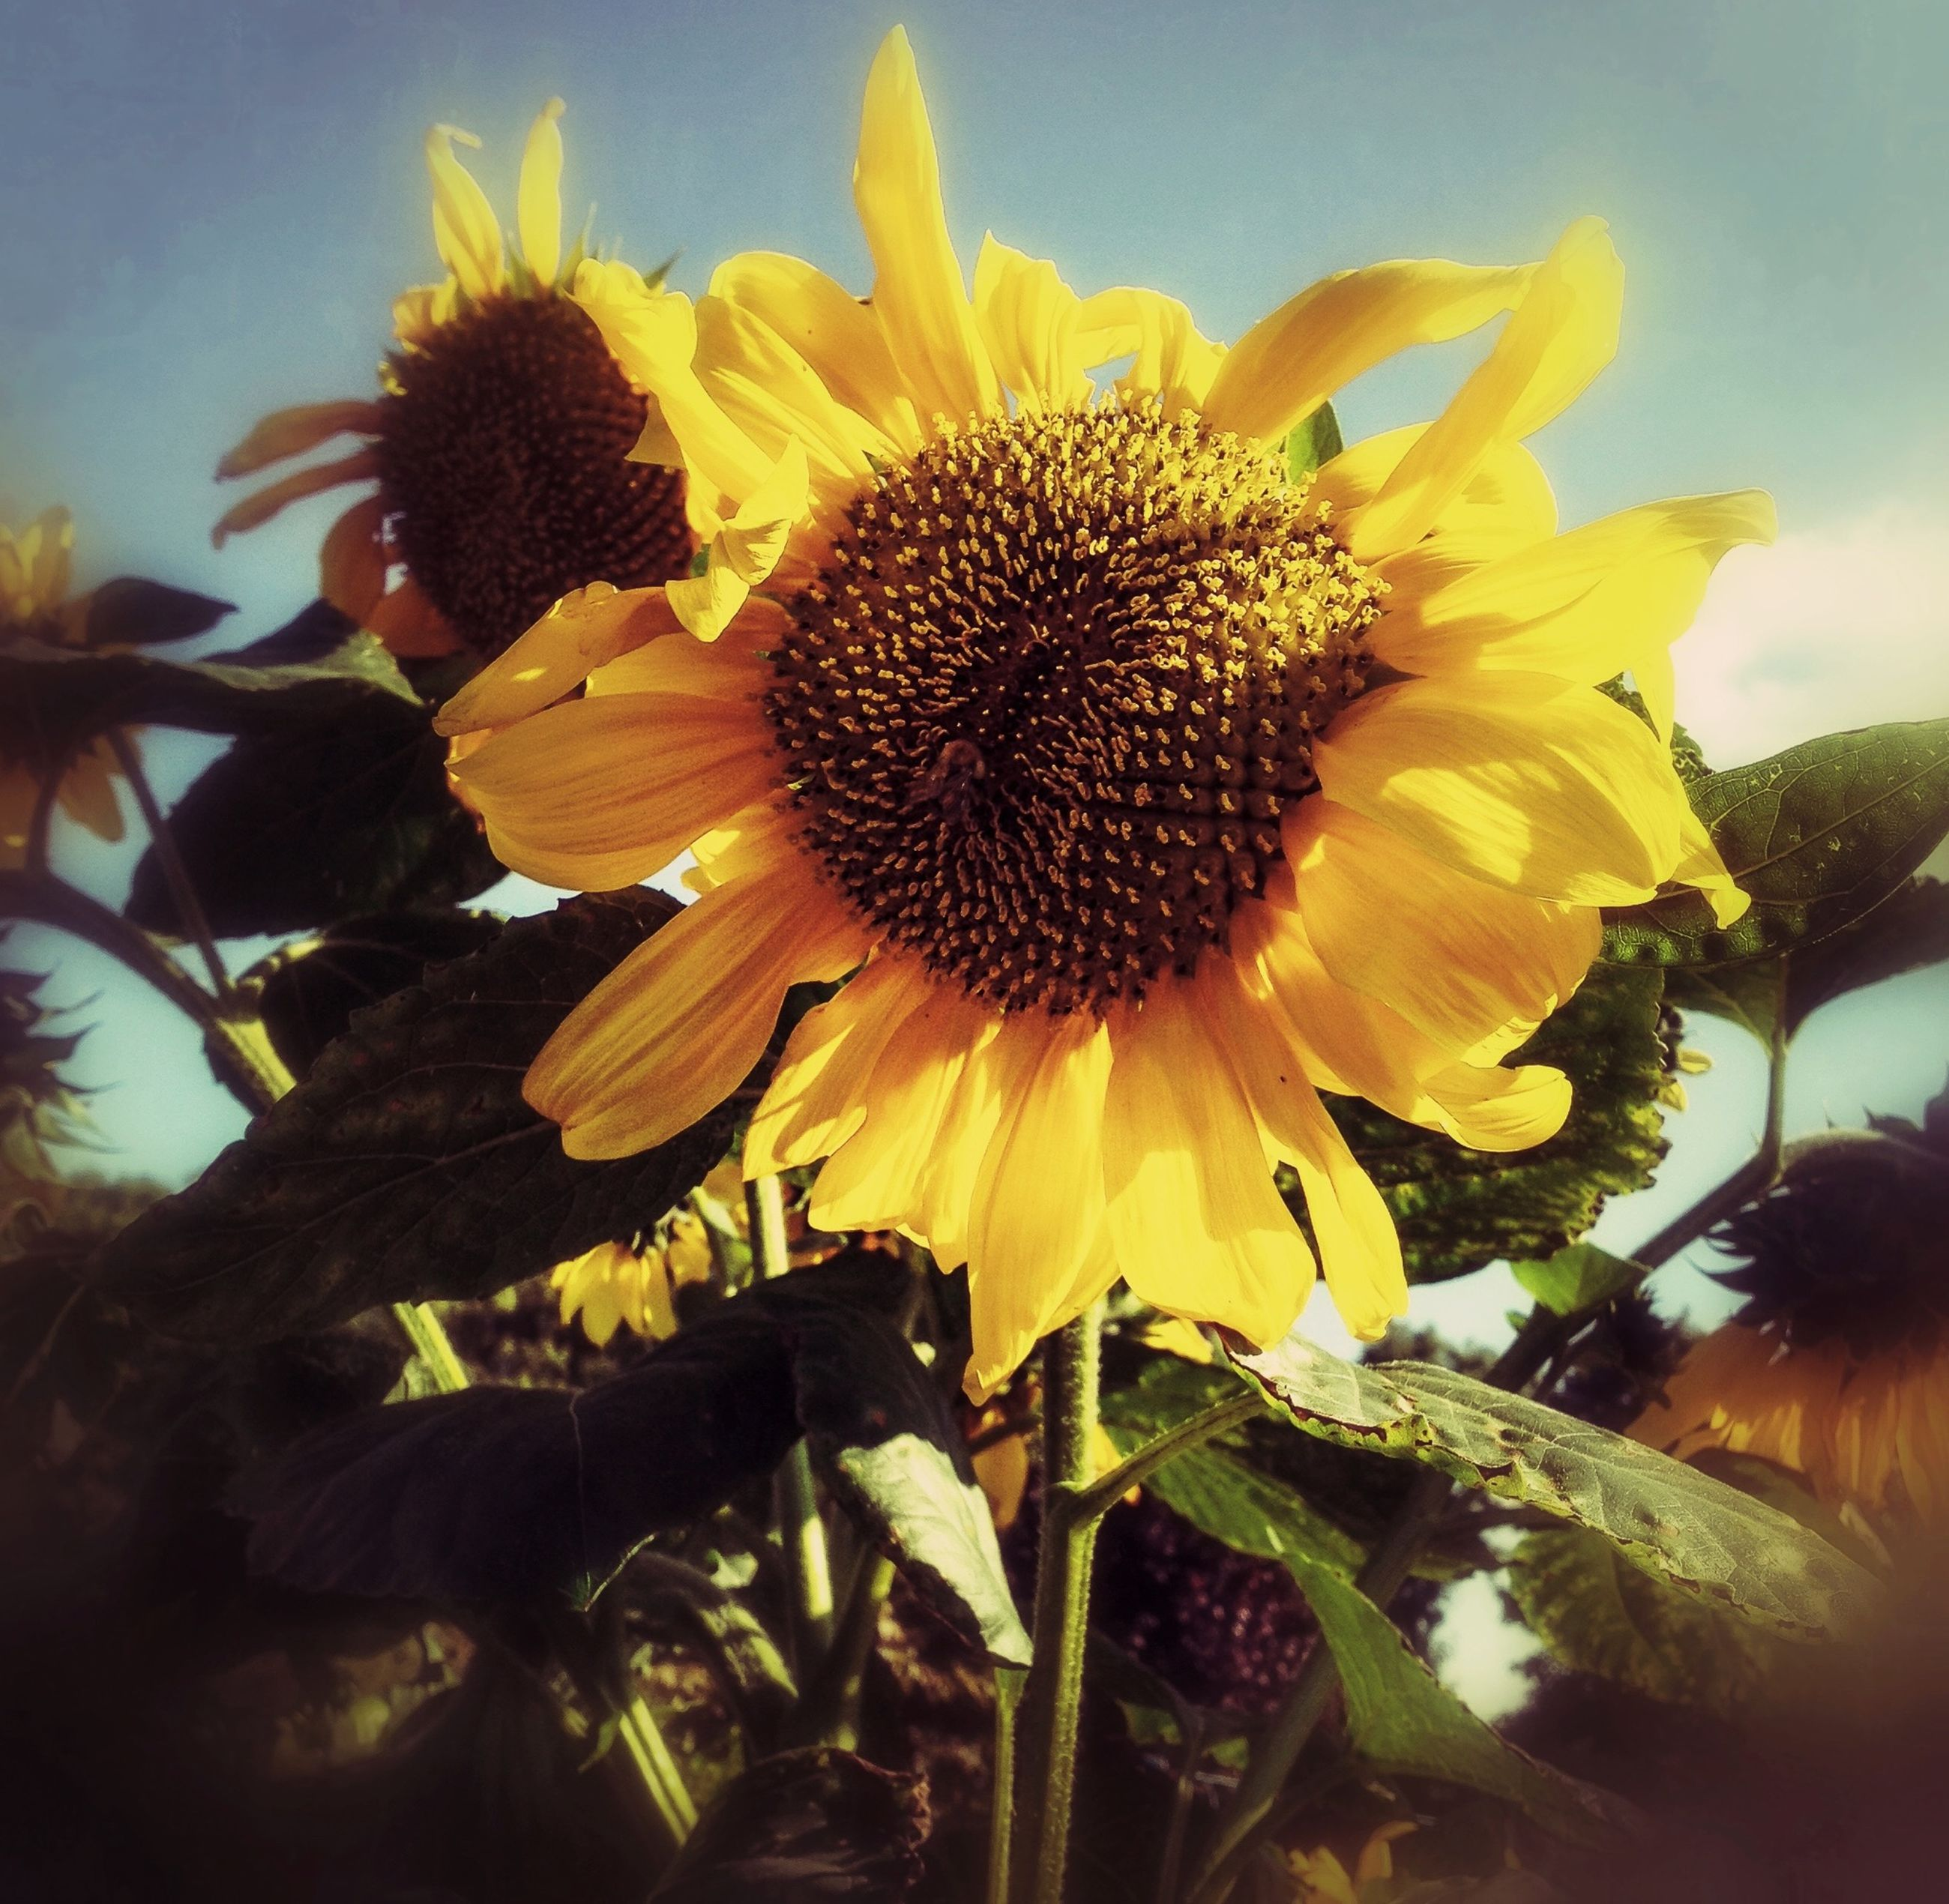 flower, yellow, petal, flower head, freshness, sunflower, fragility, growth, pollen, beauty in nature, close-up, blooming, plant, nature, single flower, sky, focus on foreground, in bloom, outdoors, no people